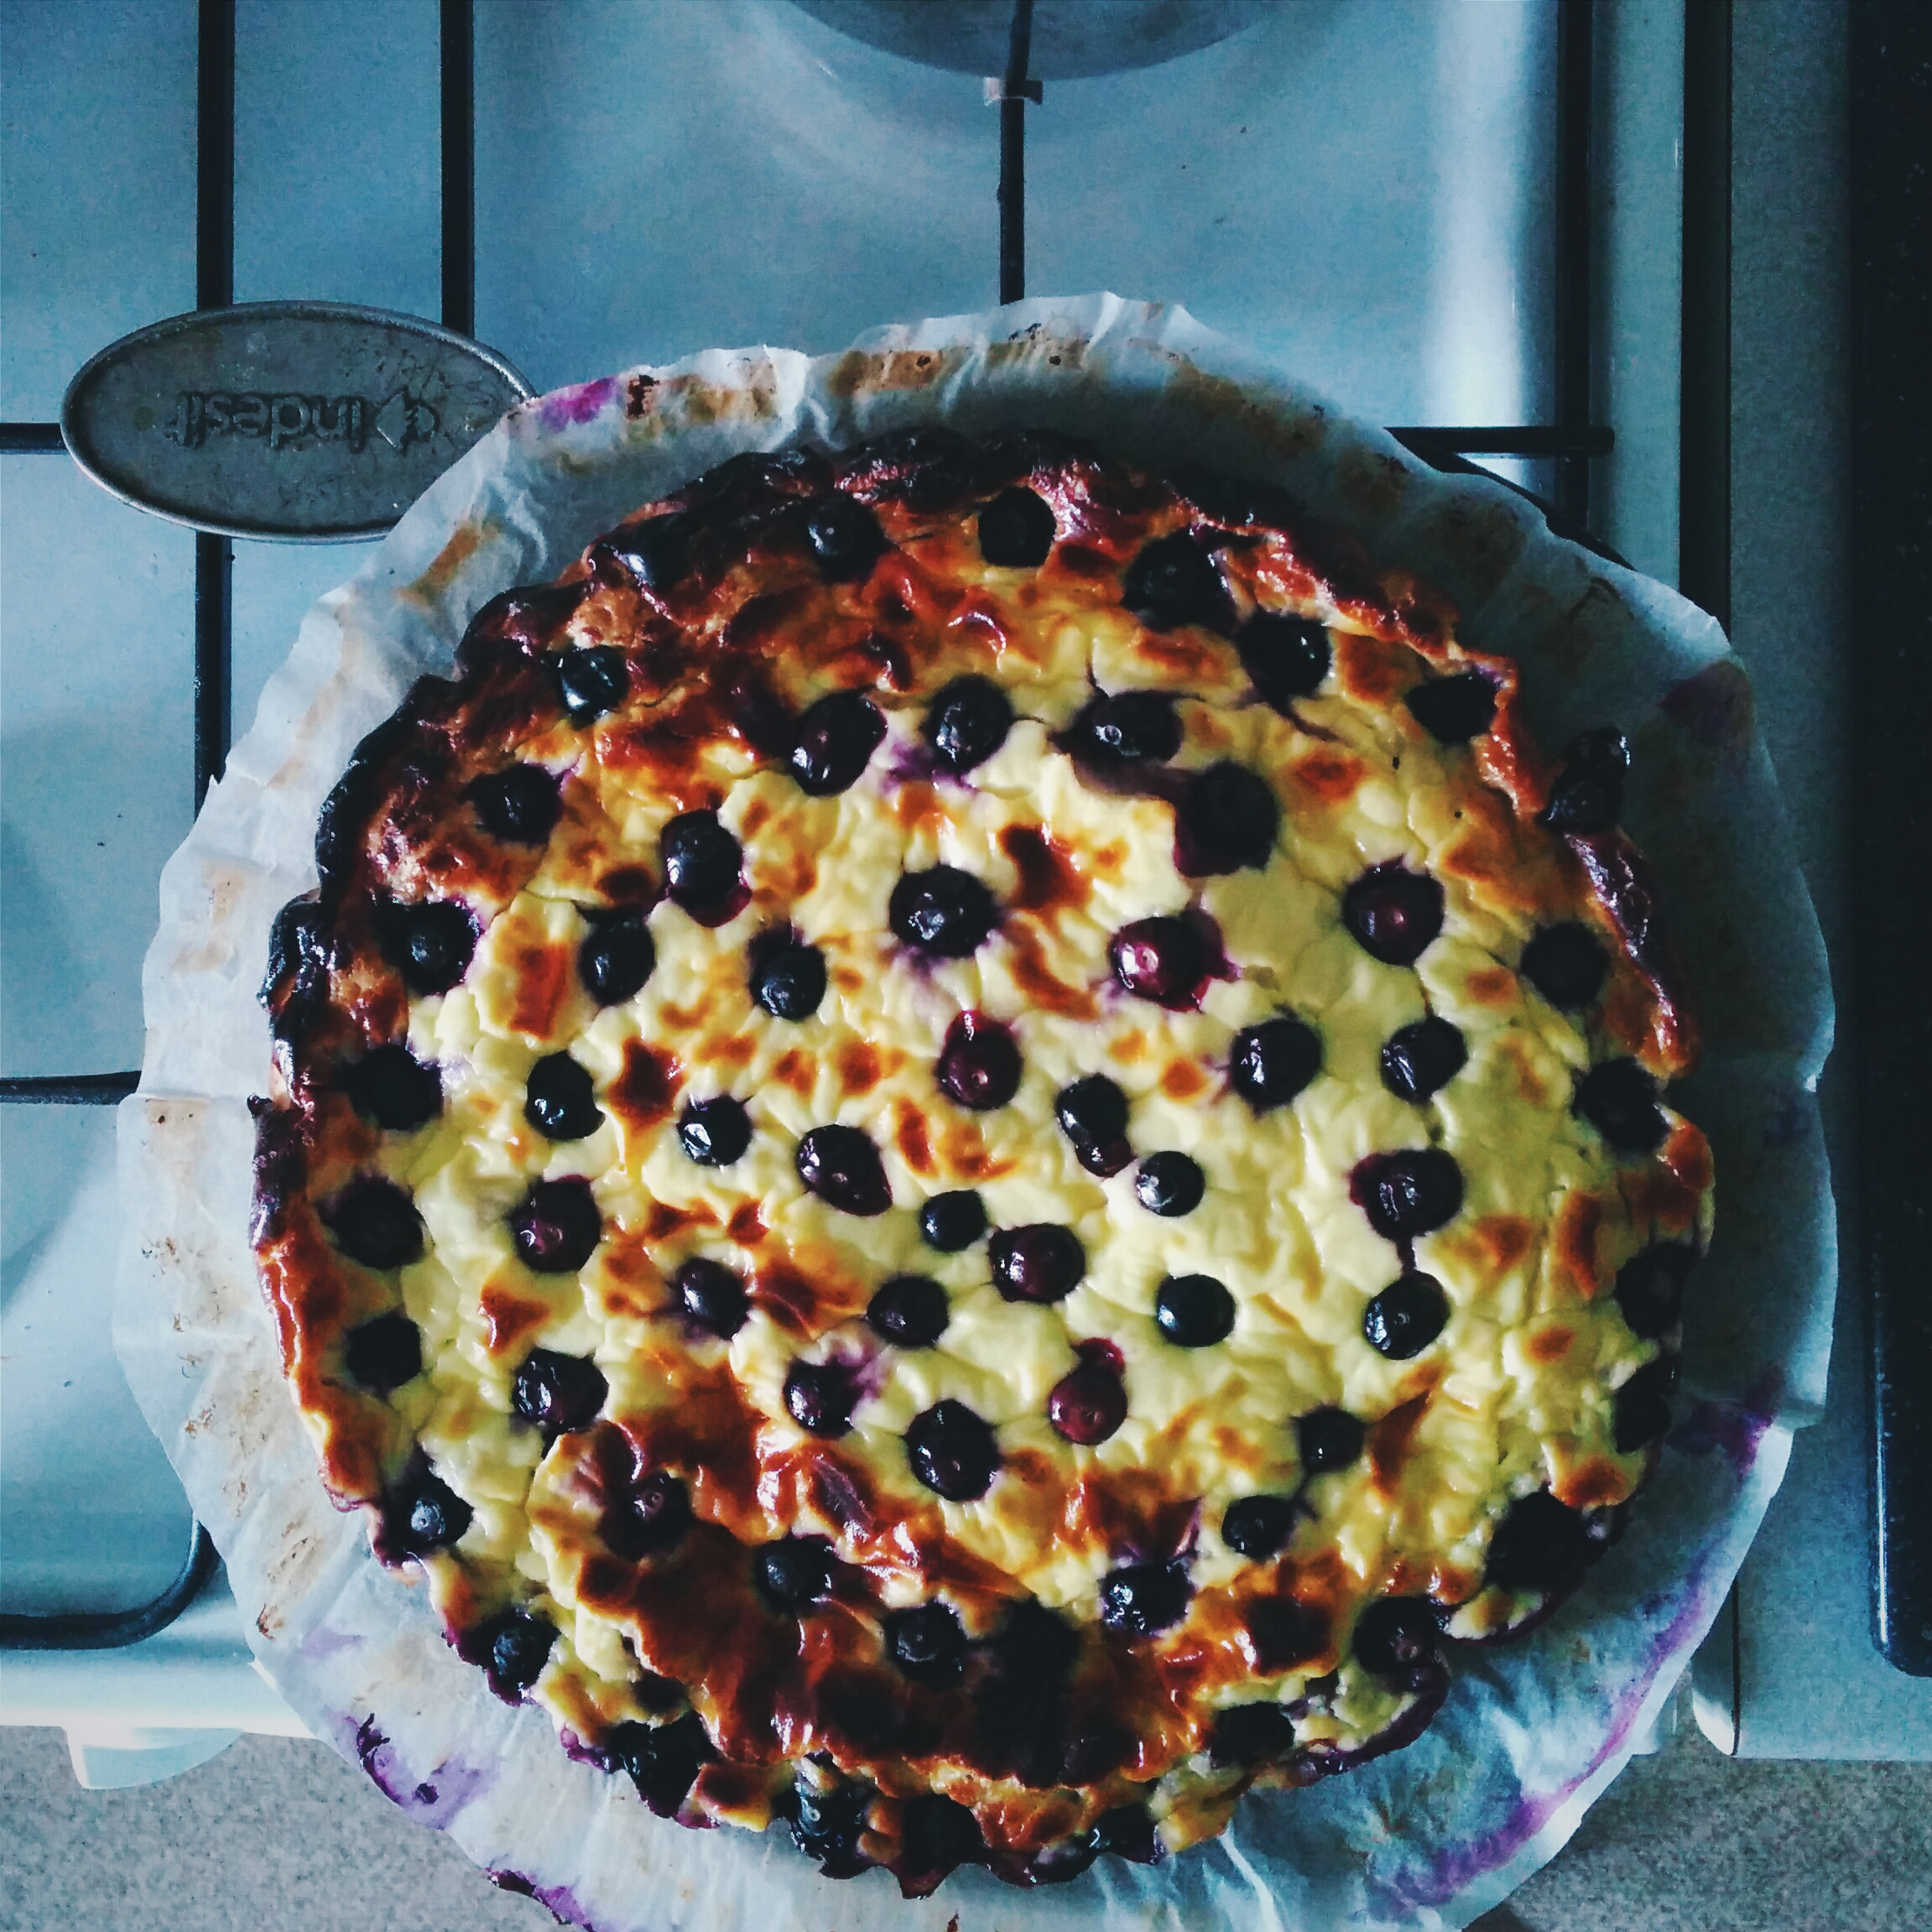 Rustical homemade cake with cherries